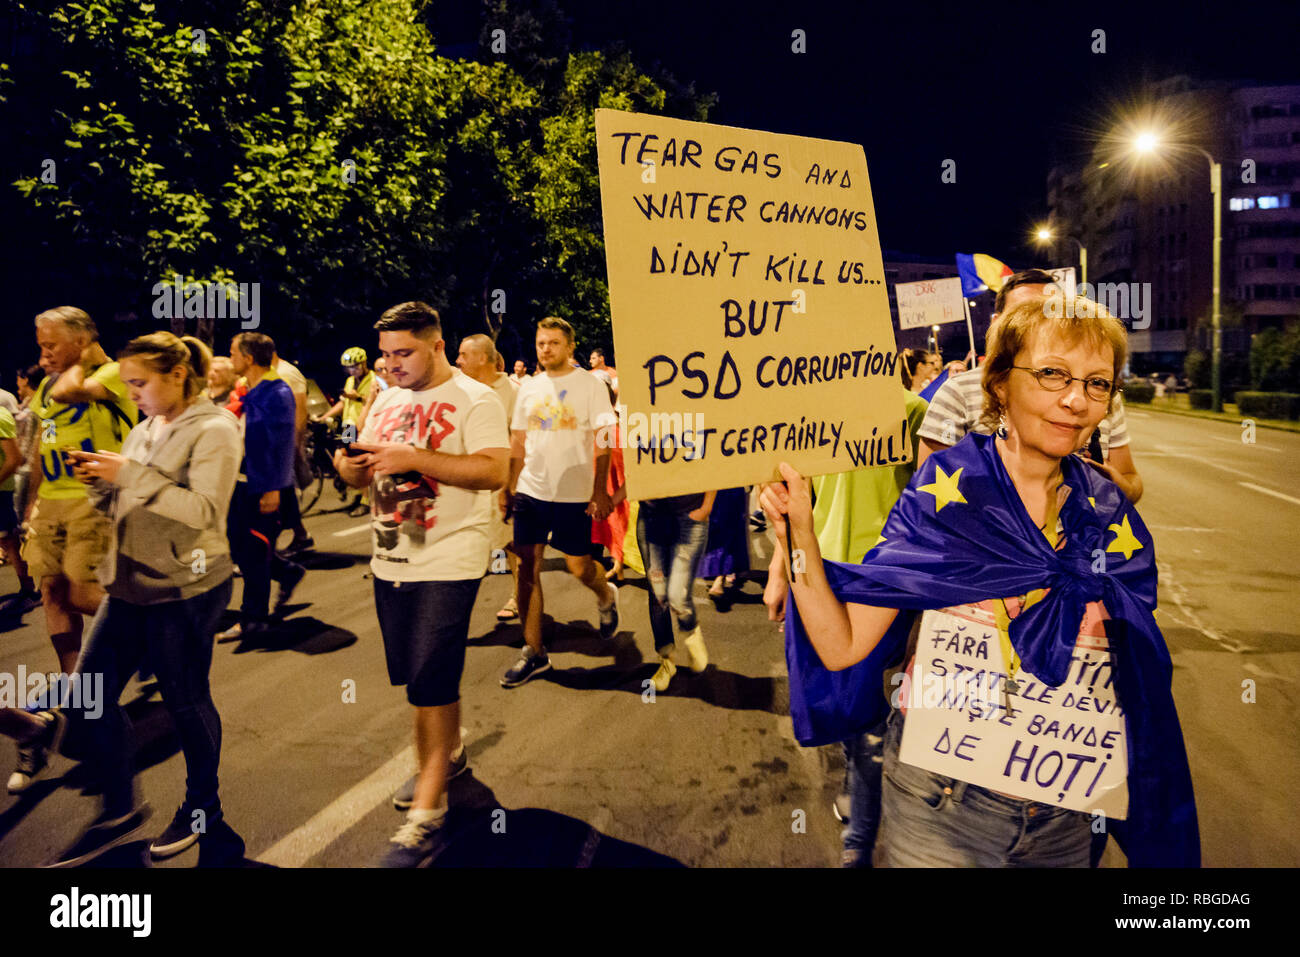 Brasov - Romania, 11 August 2018: Thousands of Romanians living in Brasov support the Diaspora anti-government protest to take place in Bucharest. - Stock Image